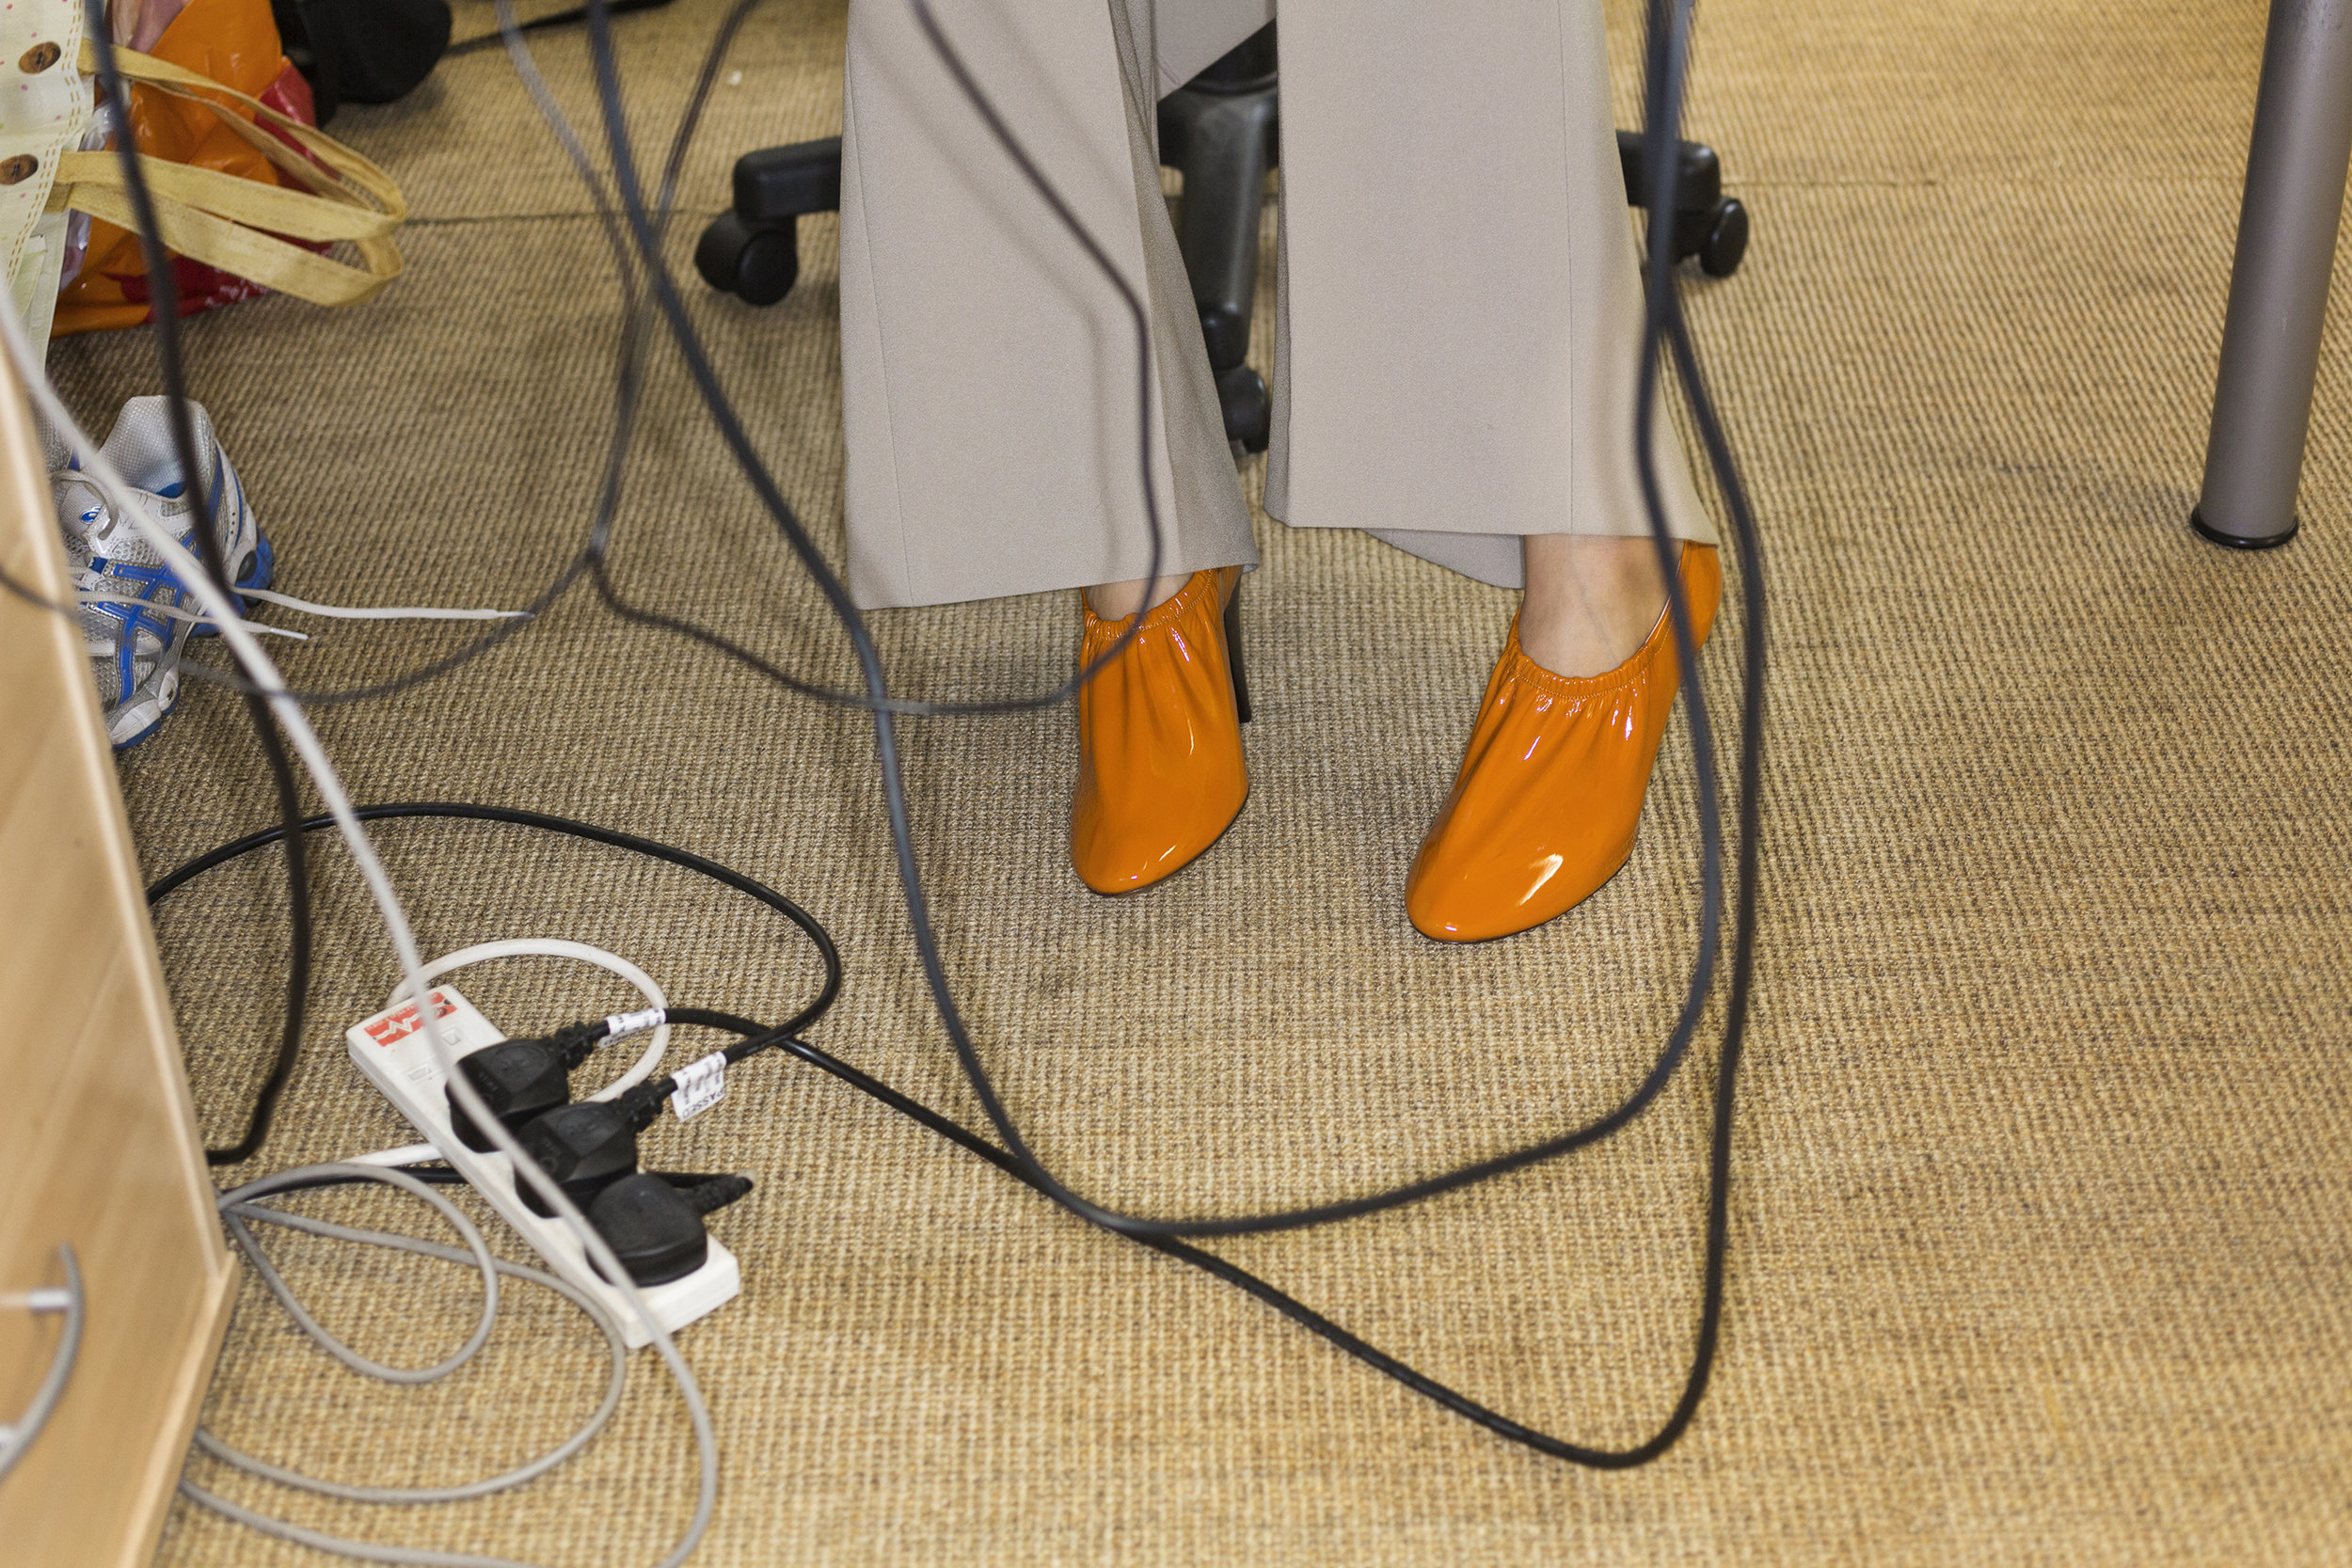 Orange soft patent calfskin pumps CÉLINE, high wasted flared trousers AMELIE BELUZE.